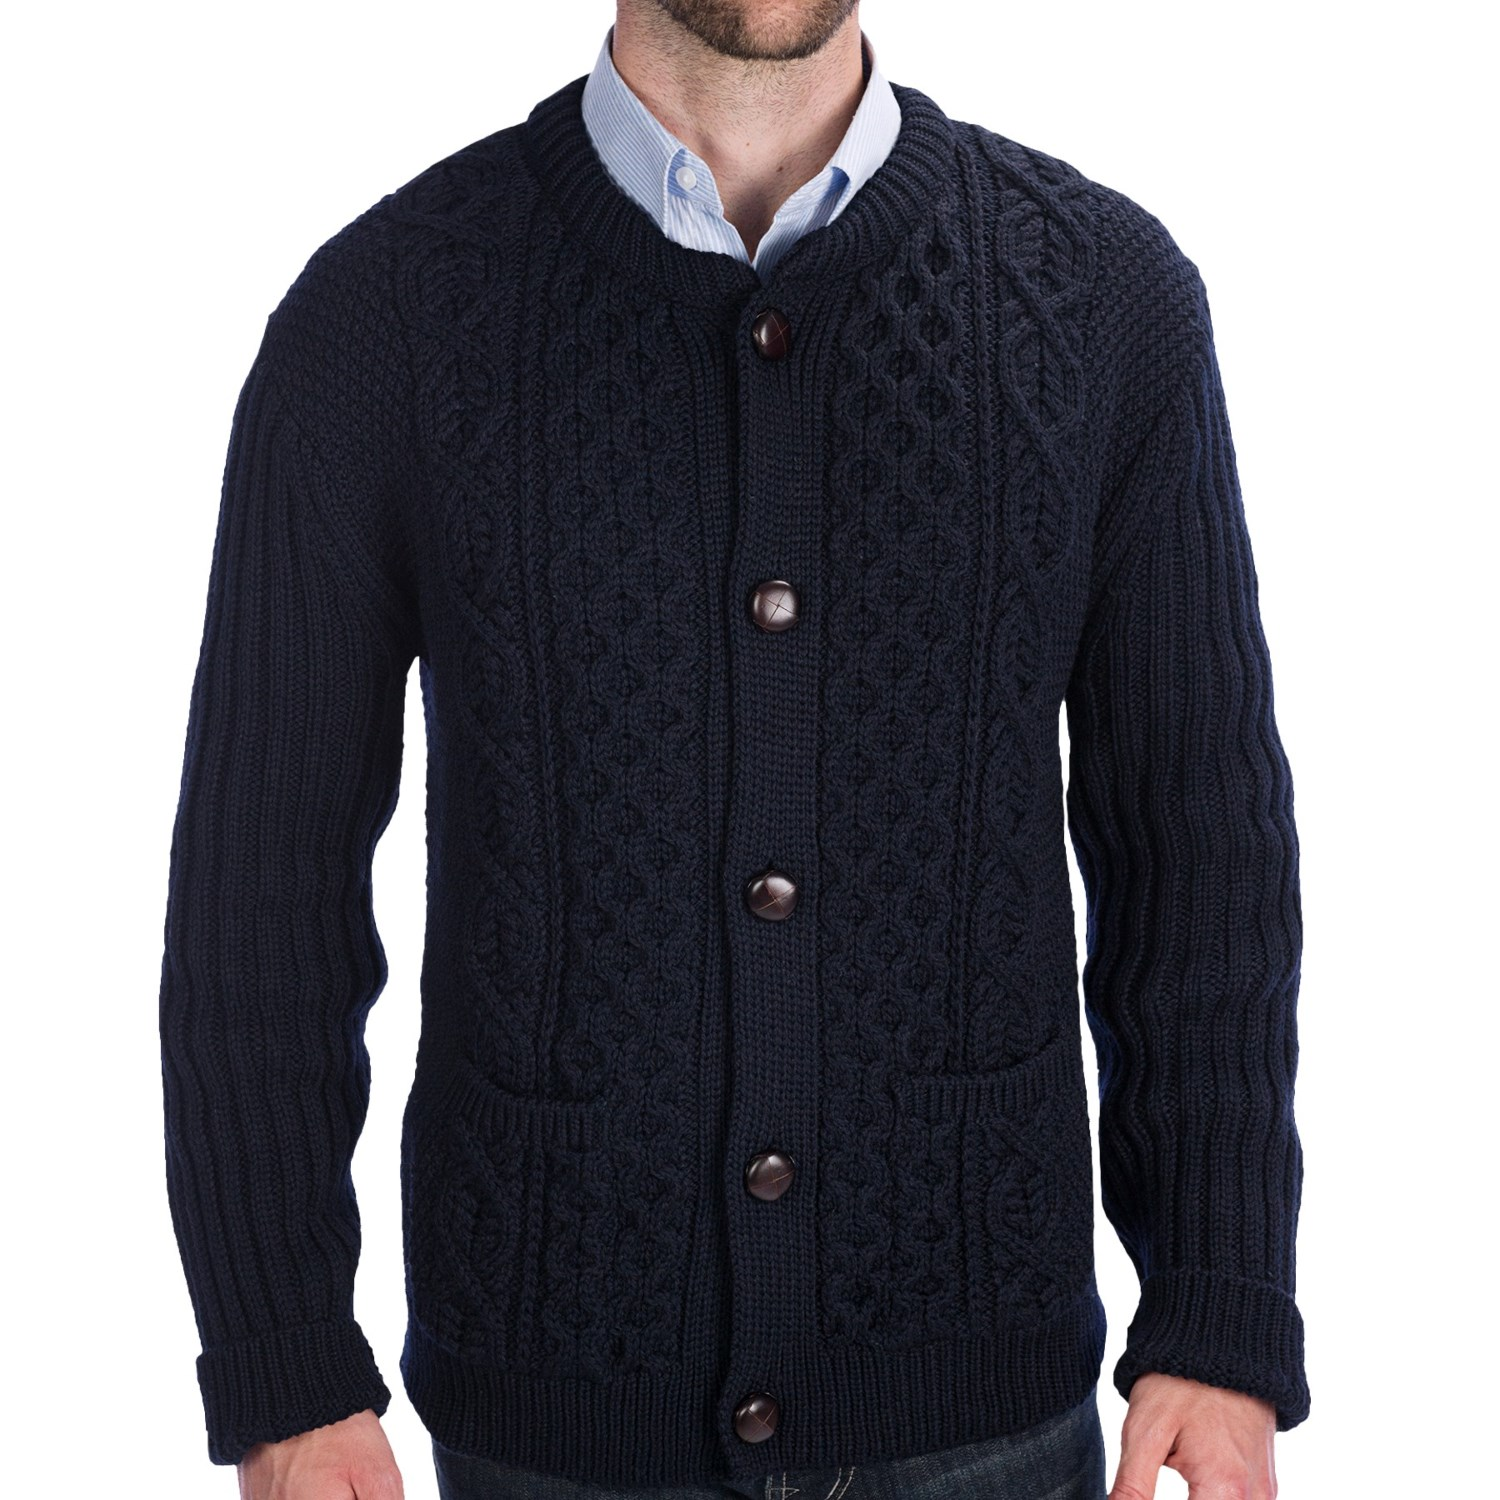 Navy Wool Cable Knit Cardigan 53